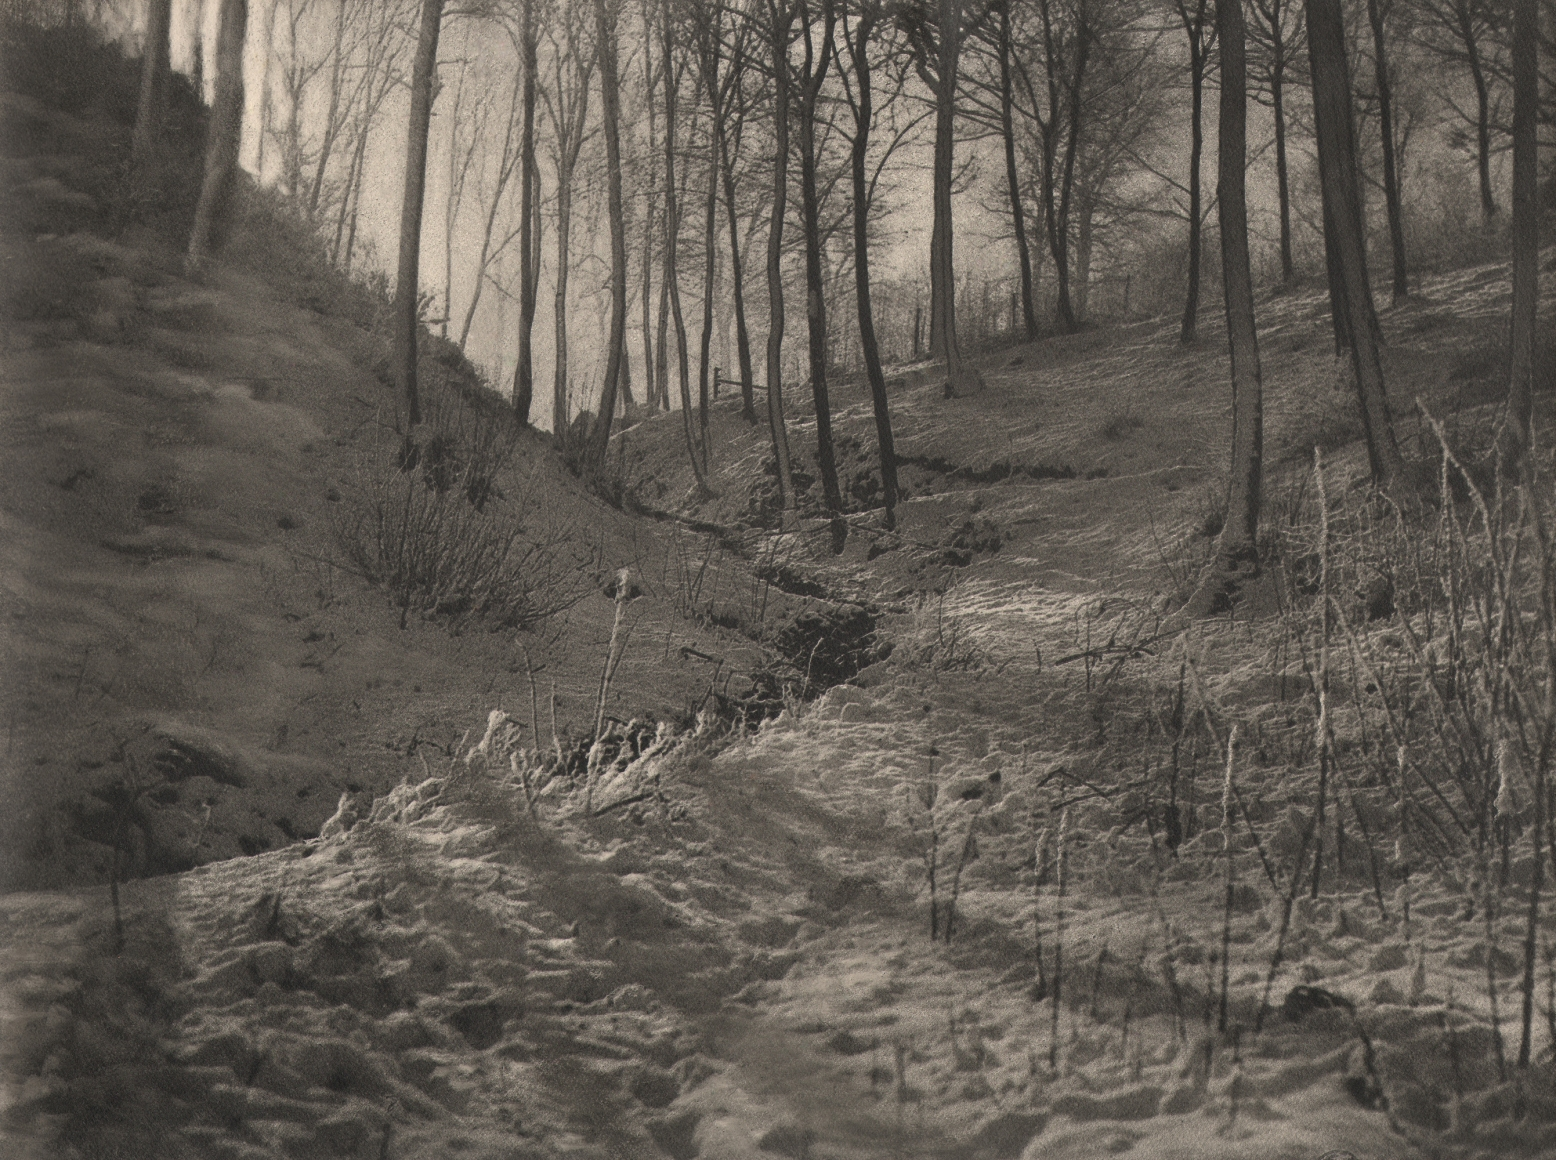 25. Léonard Misonne, [title illegible], 1933. Sun-streaked snowy, wooded hills with thin trees. Sepia-toned print.